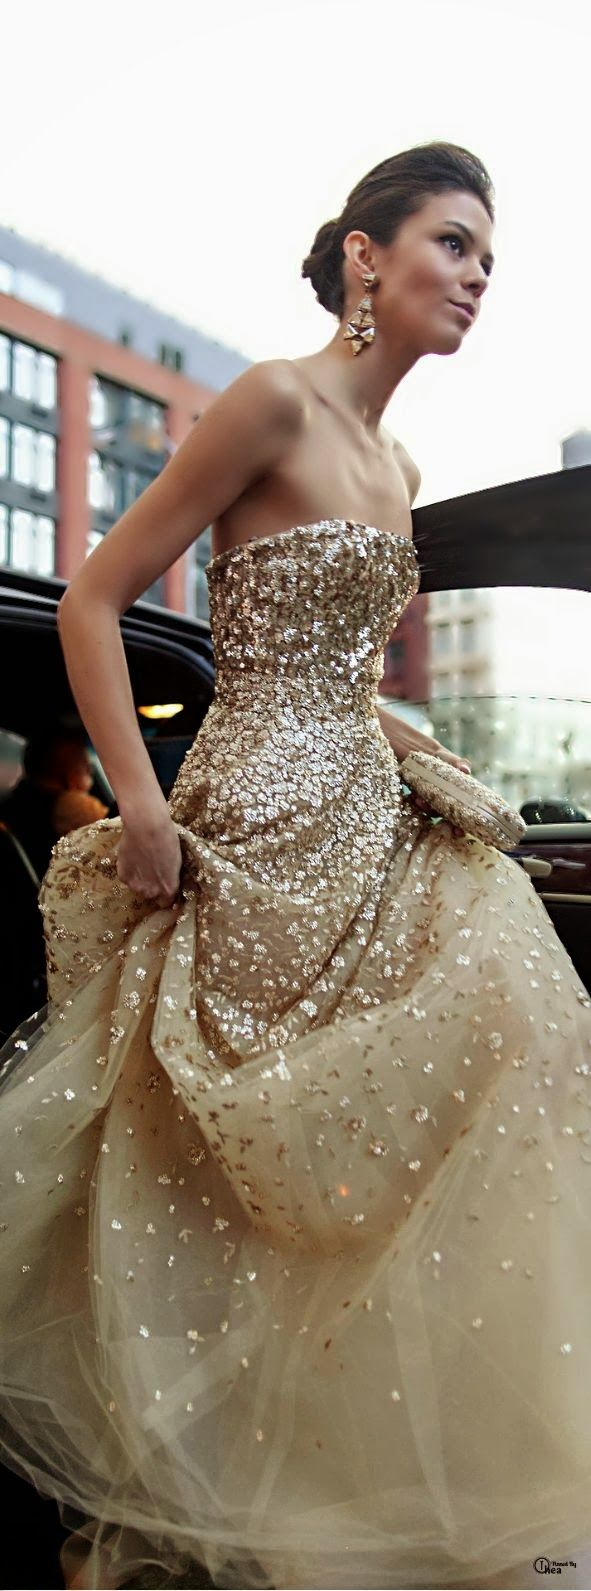 Fabulous Dress-This dress but in white would be the perfect wedding dress...